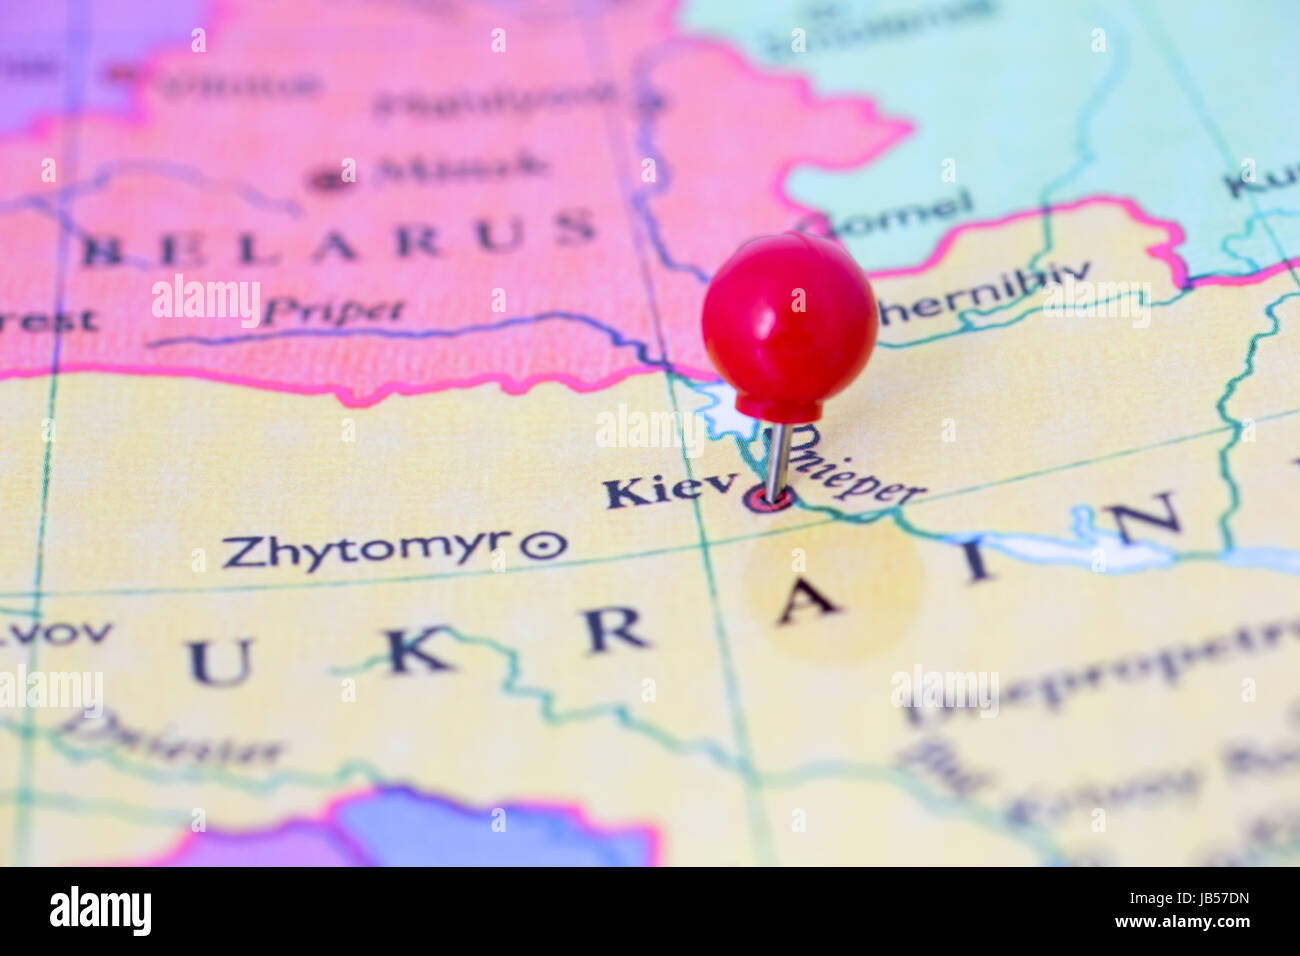 Round Red Thumb Tack Pinched Through City Of Kiev On Ukraine Map